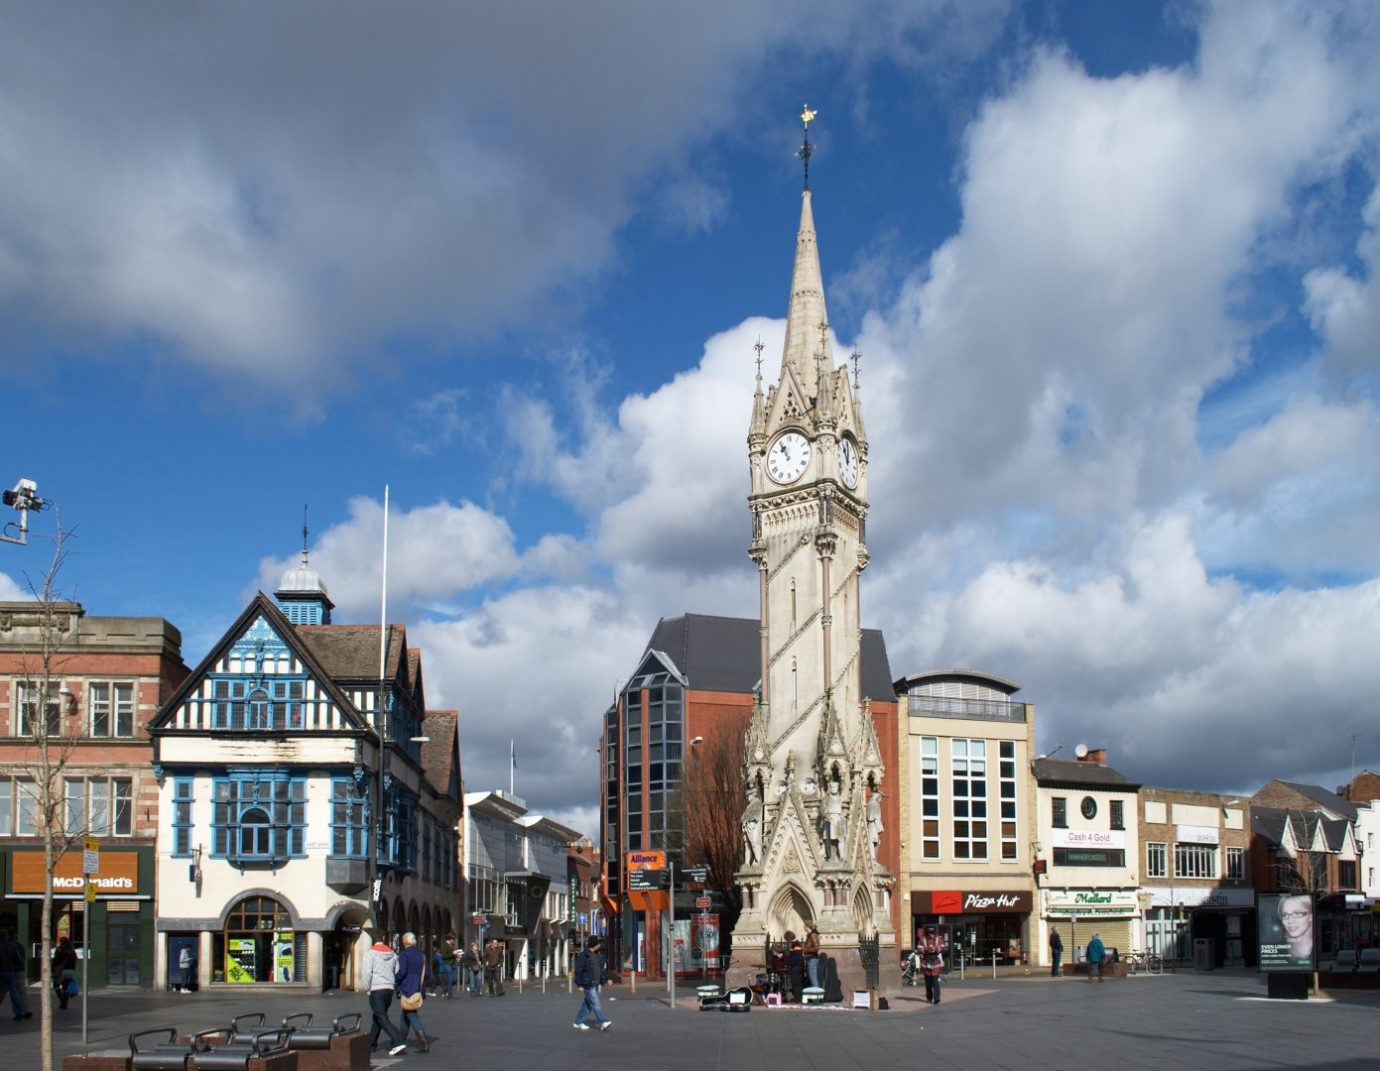 Much of Leicester's commerce lies in the engineering, retail, and food and drink sectors